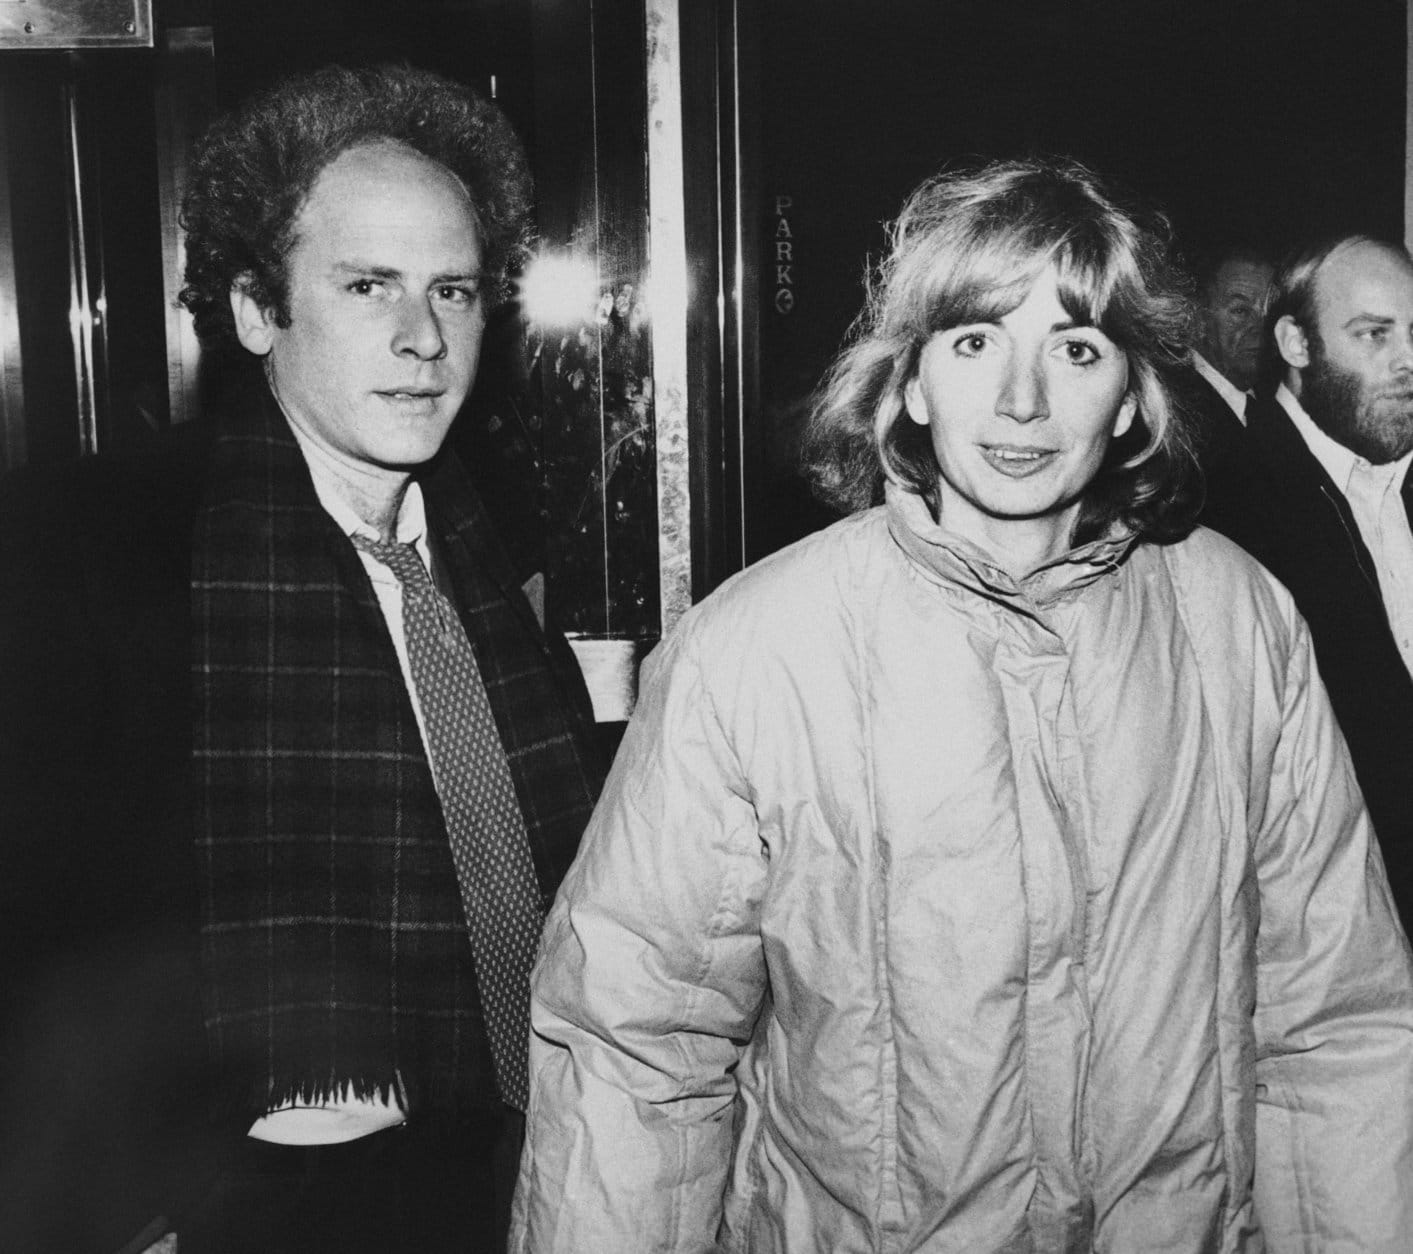 "Actress Penny Marshall and singer-composer-actor Art Garfunkel arrive at the Uris Theater in New York City, Feb. 17, 1981. They were arriving to attend a performance of the revival of Gilbert and Sullivan's ""Pirates of Penzance."" (AP Photo/Steve Sands)"